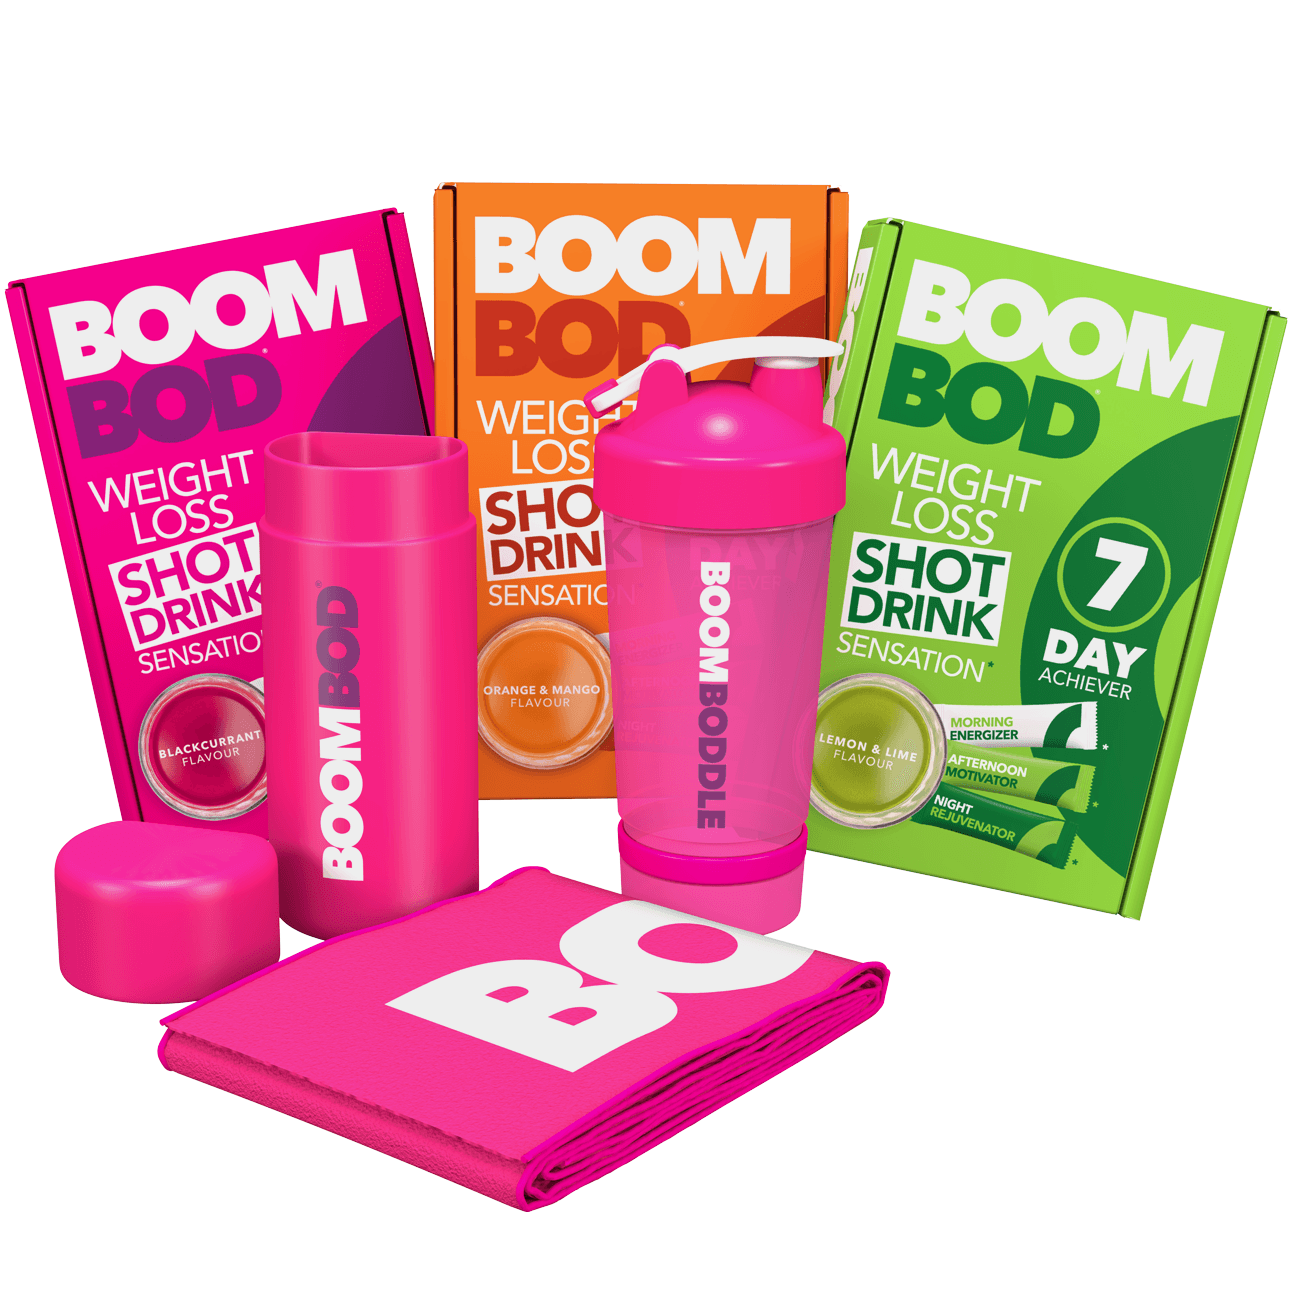 Boombundle | 3 X 7 Day Achiever | Pink Workout Towel | Pink 20oz Shaker Bottle | Blackcurrant, Orange Mango, Lemon Lime